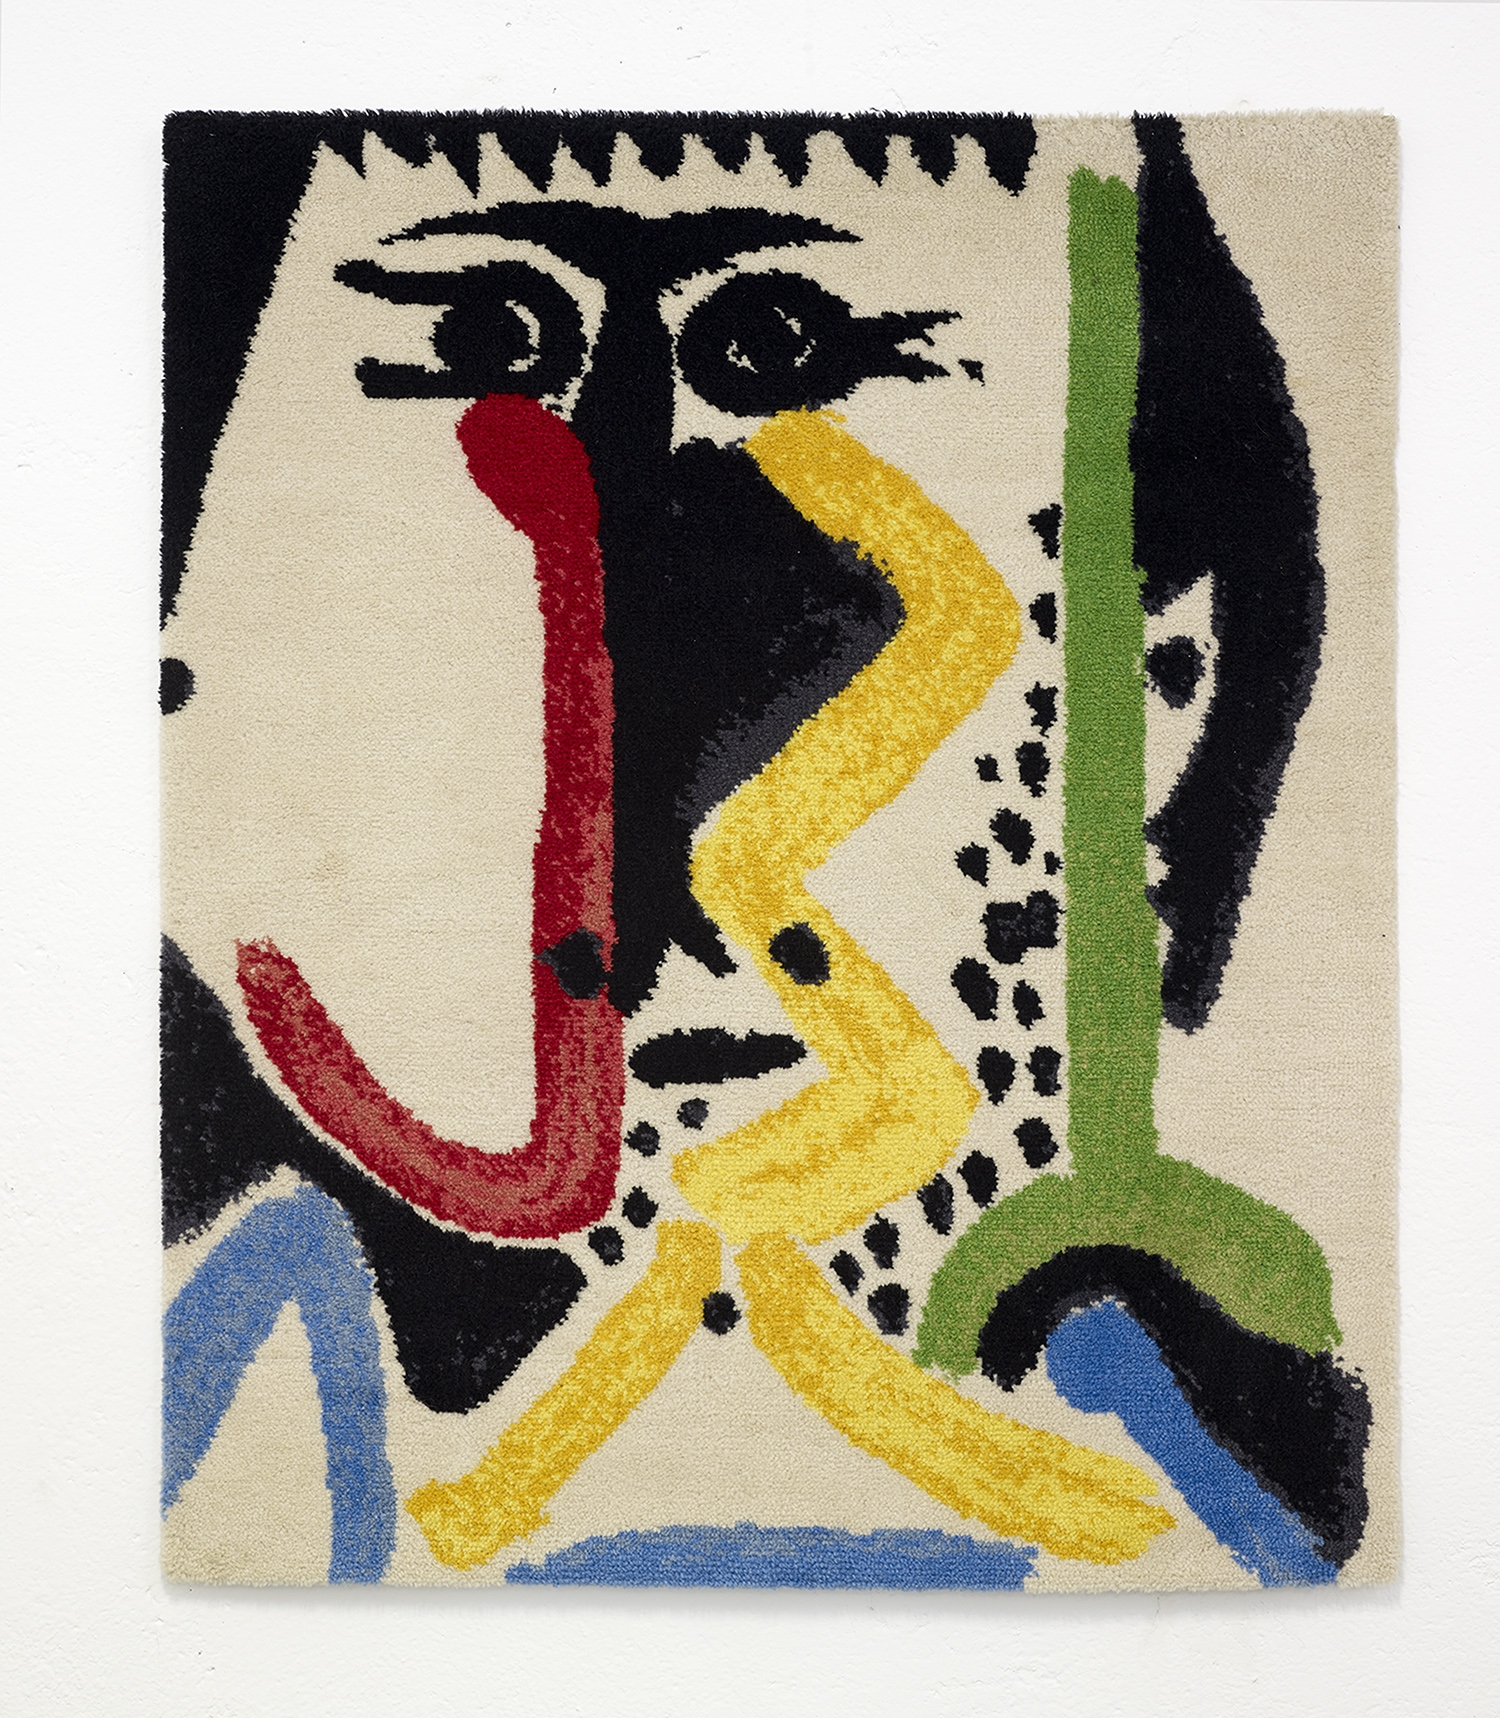 picasso-limited-edition-artist-rug-image-02